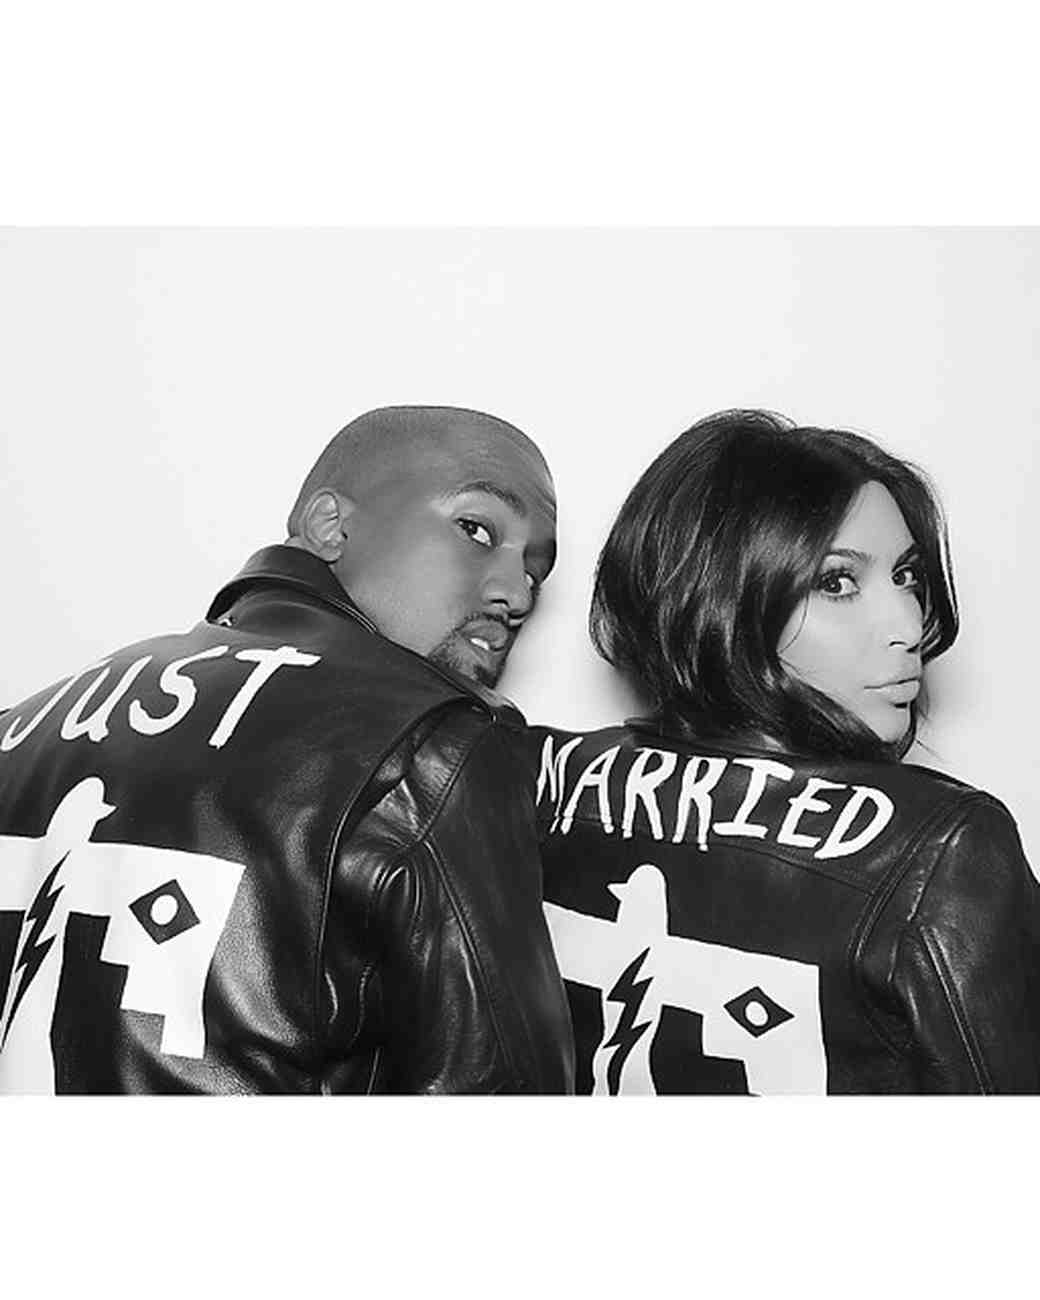 kim-kardashian-kanye-west-just-married-jackets-0516.jpg